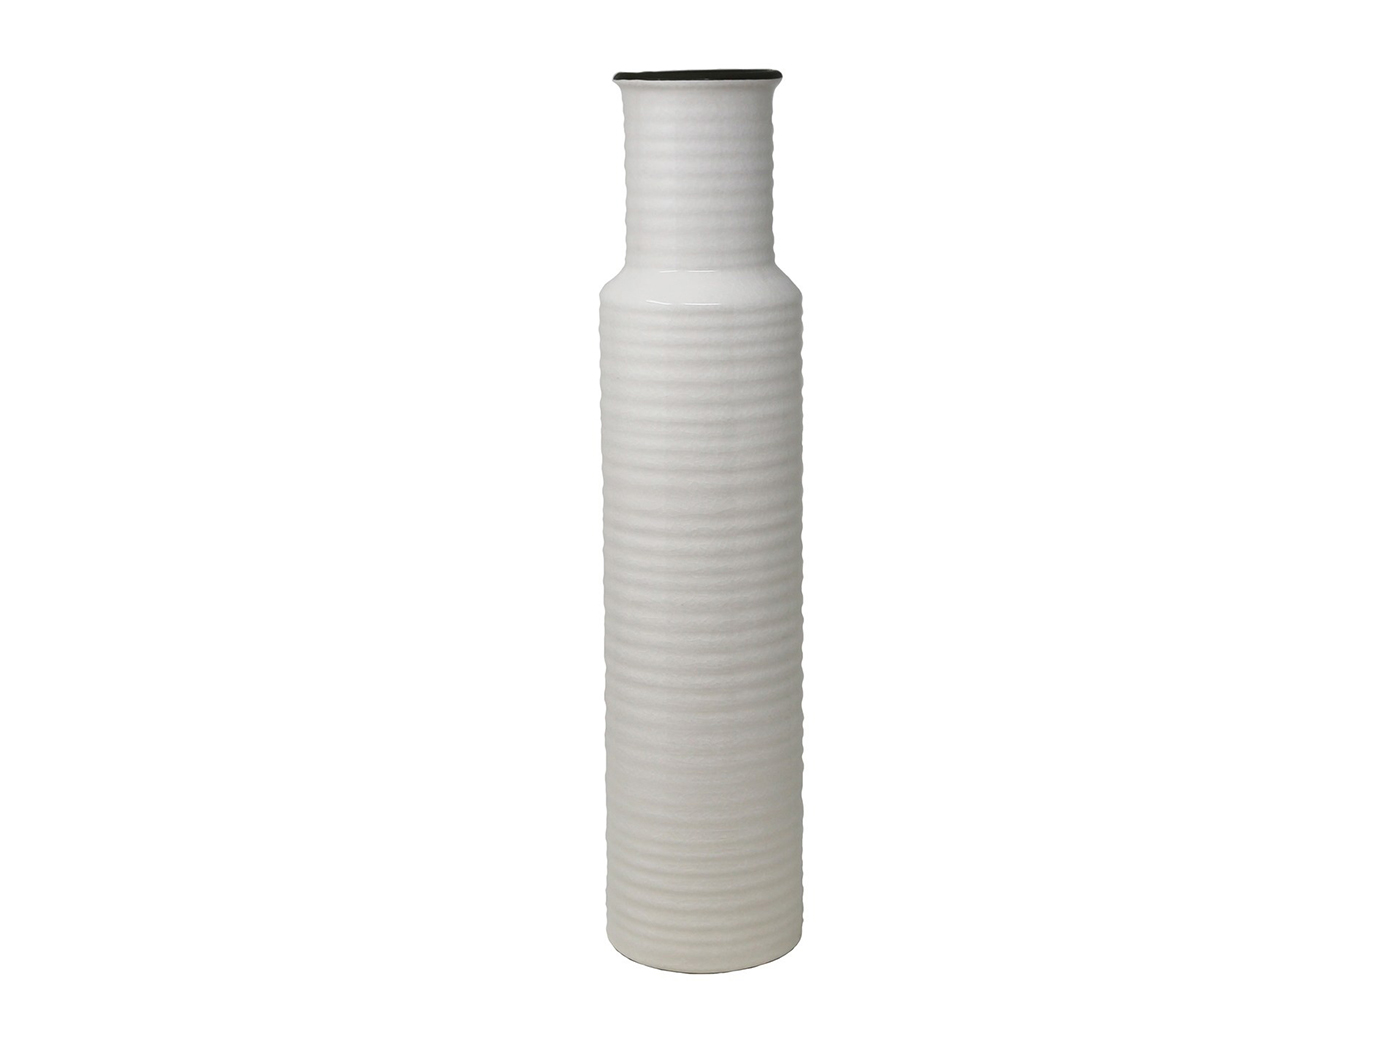 "White Ribbed Ceramic Vase 4.25""W x 18.75""H"